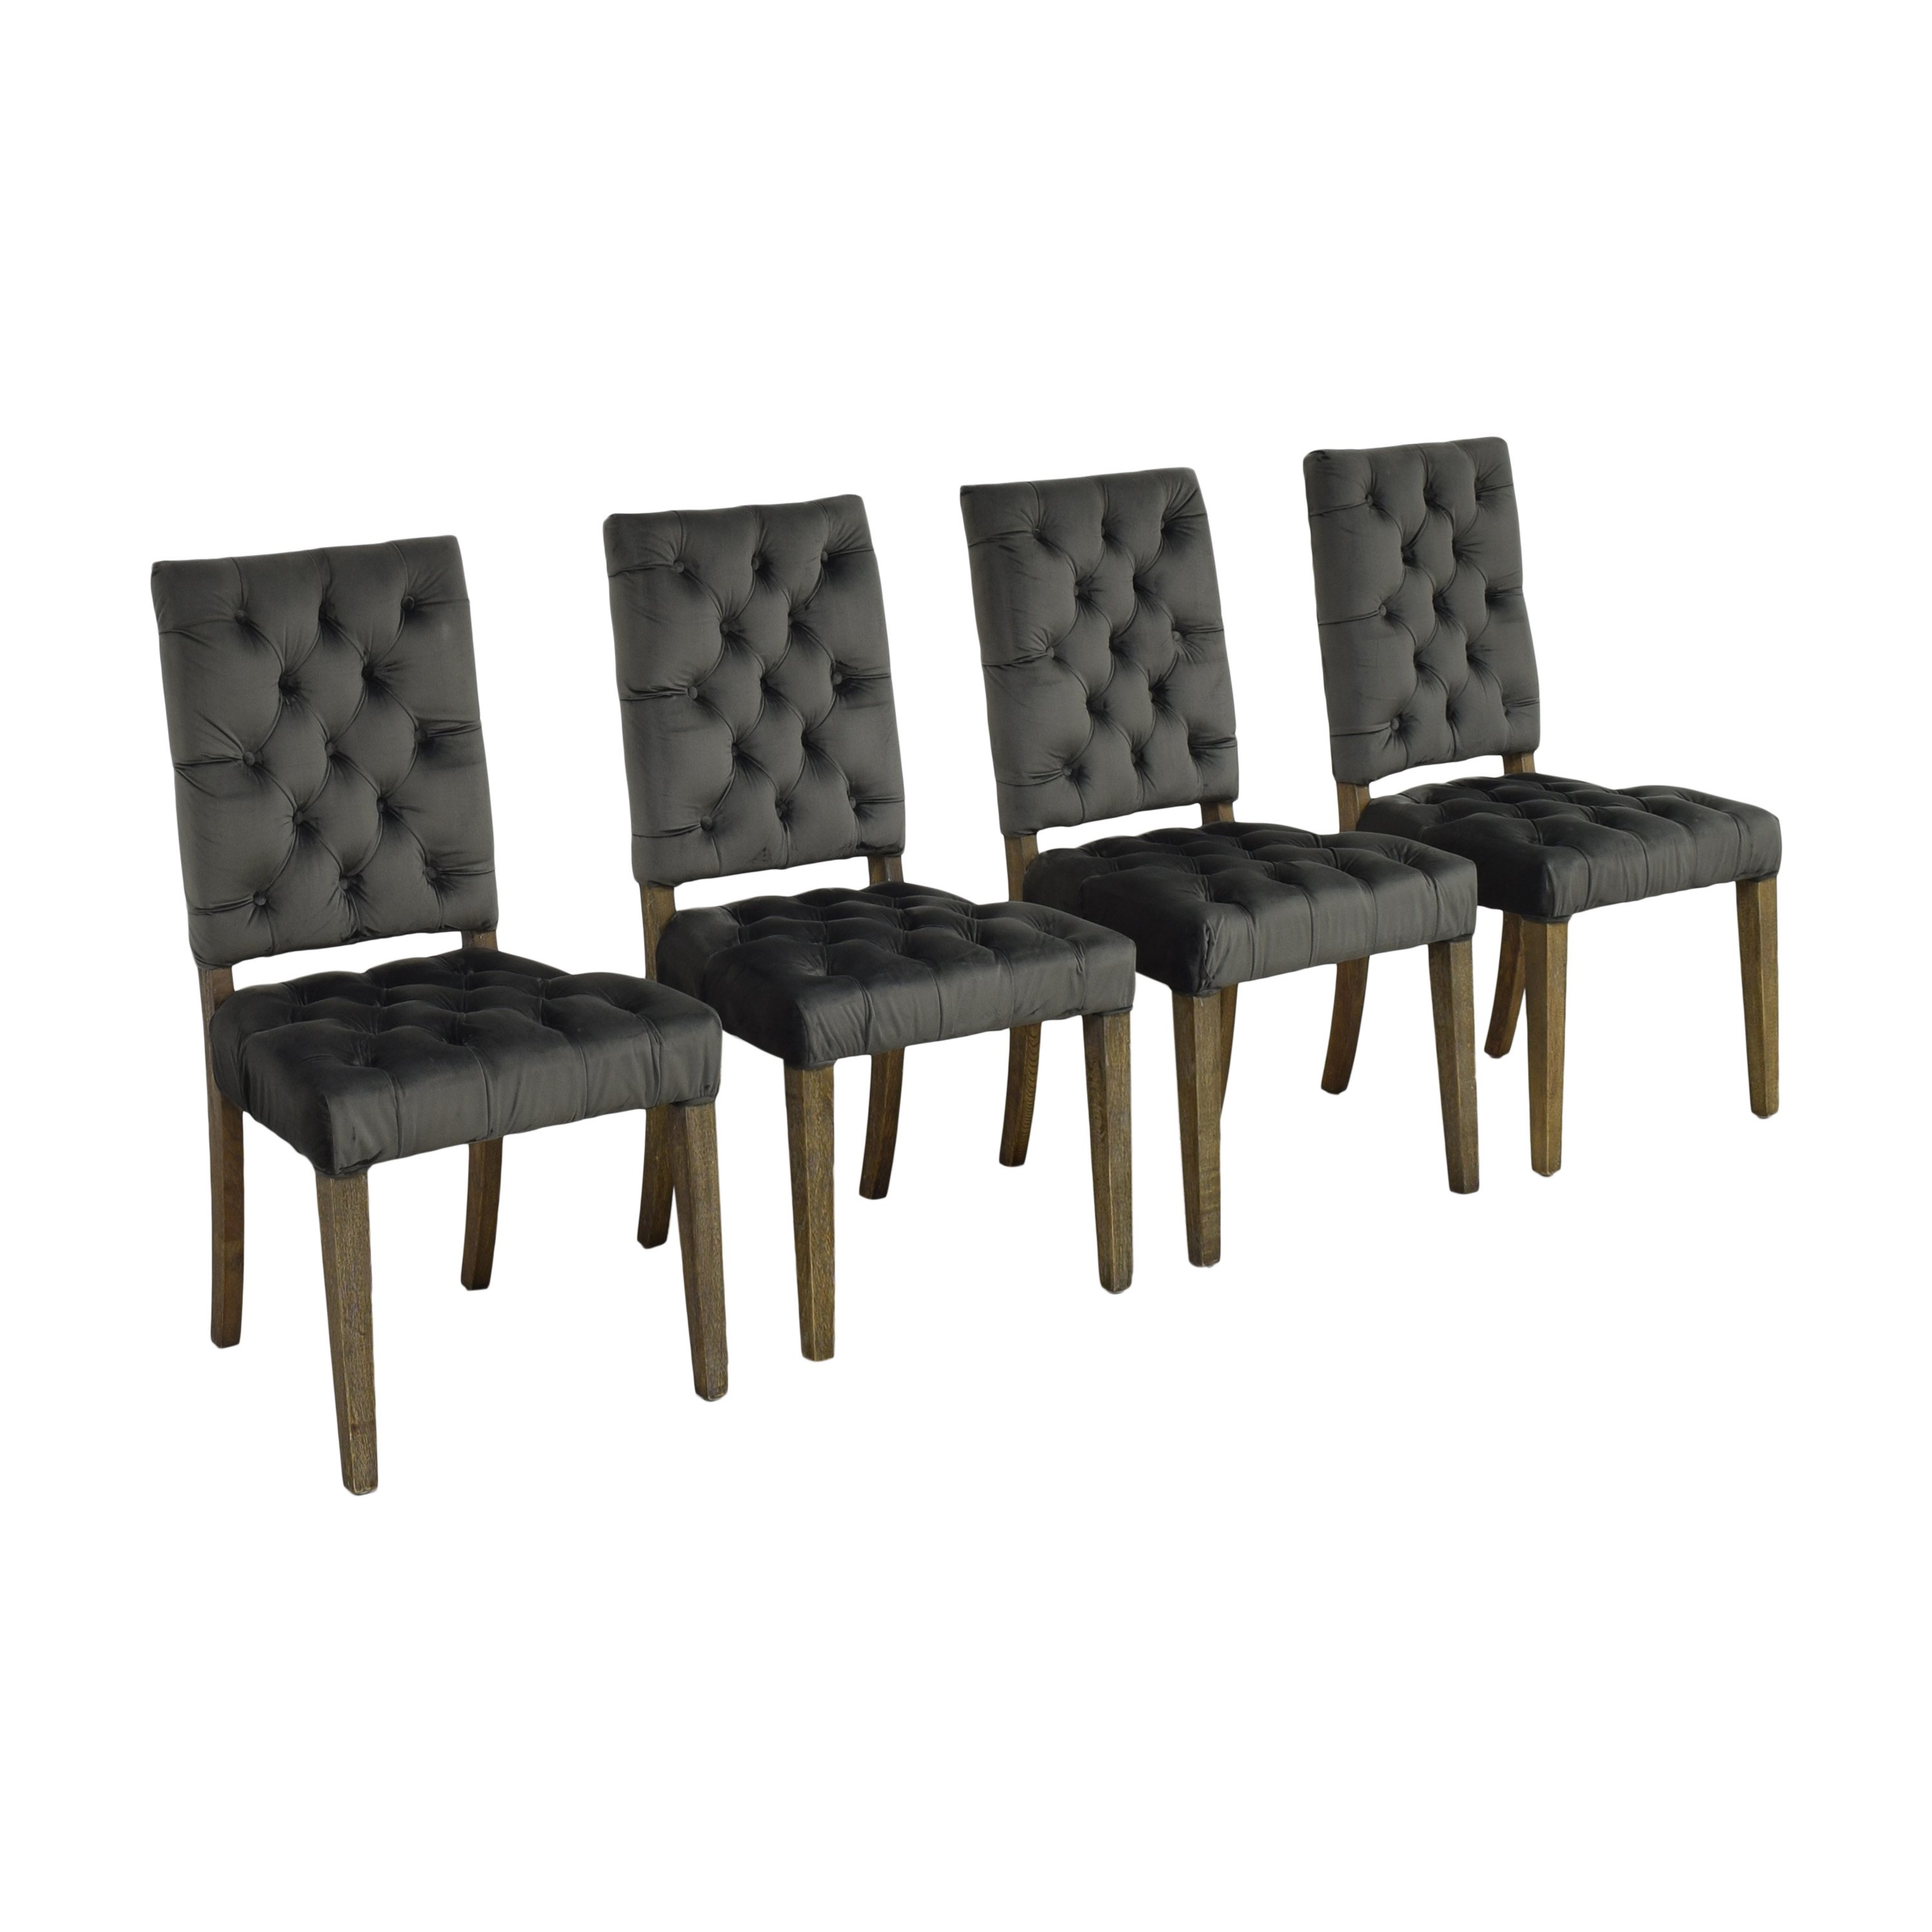 Christopher Knight Saltillo Dining Chairs / Chairs